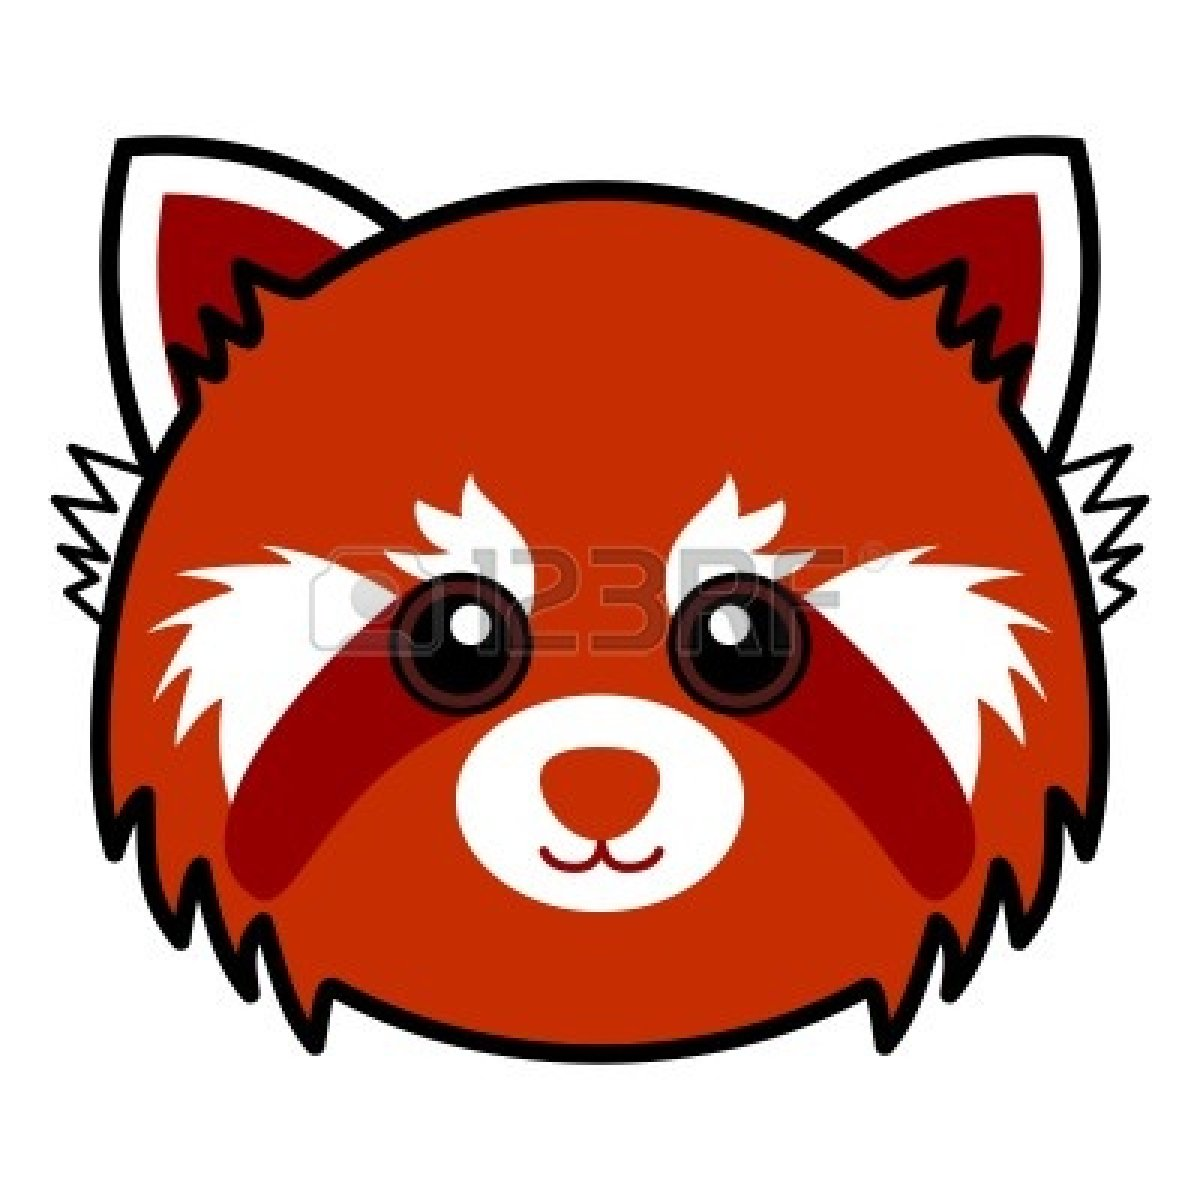 Red Panda clipart face #1